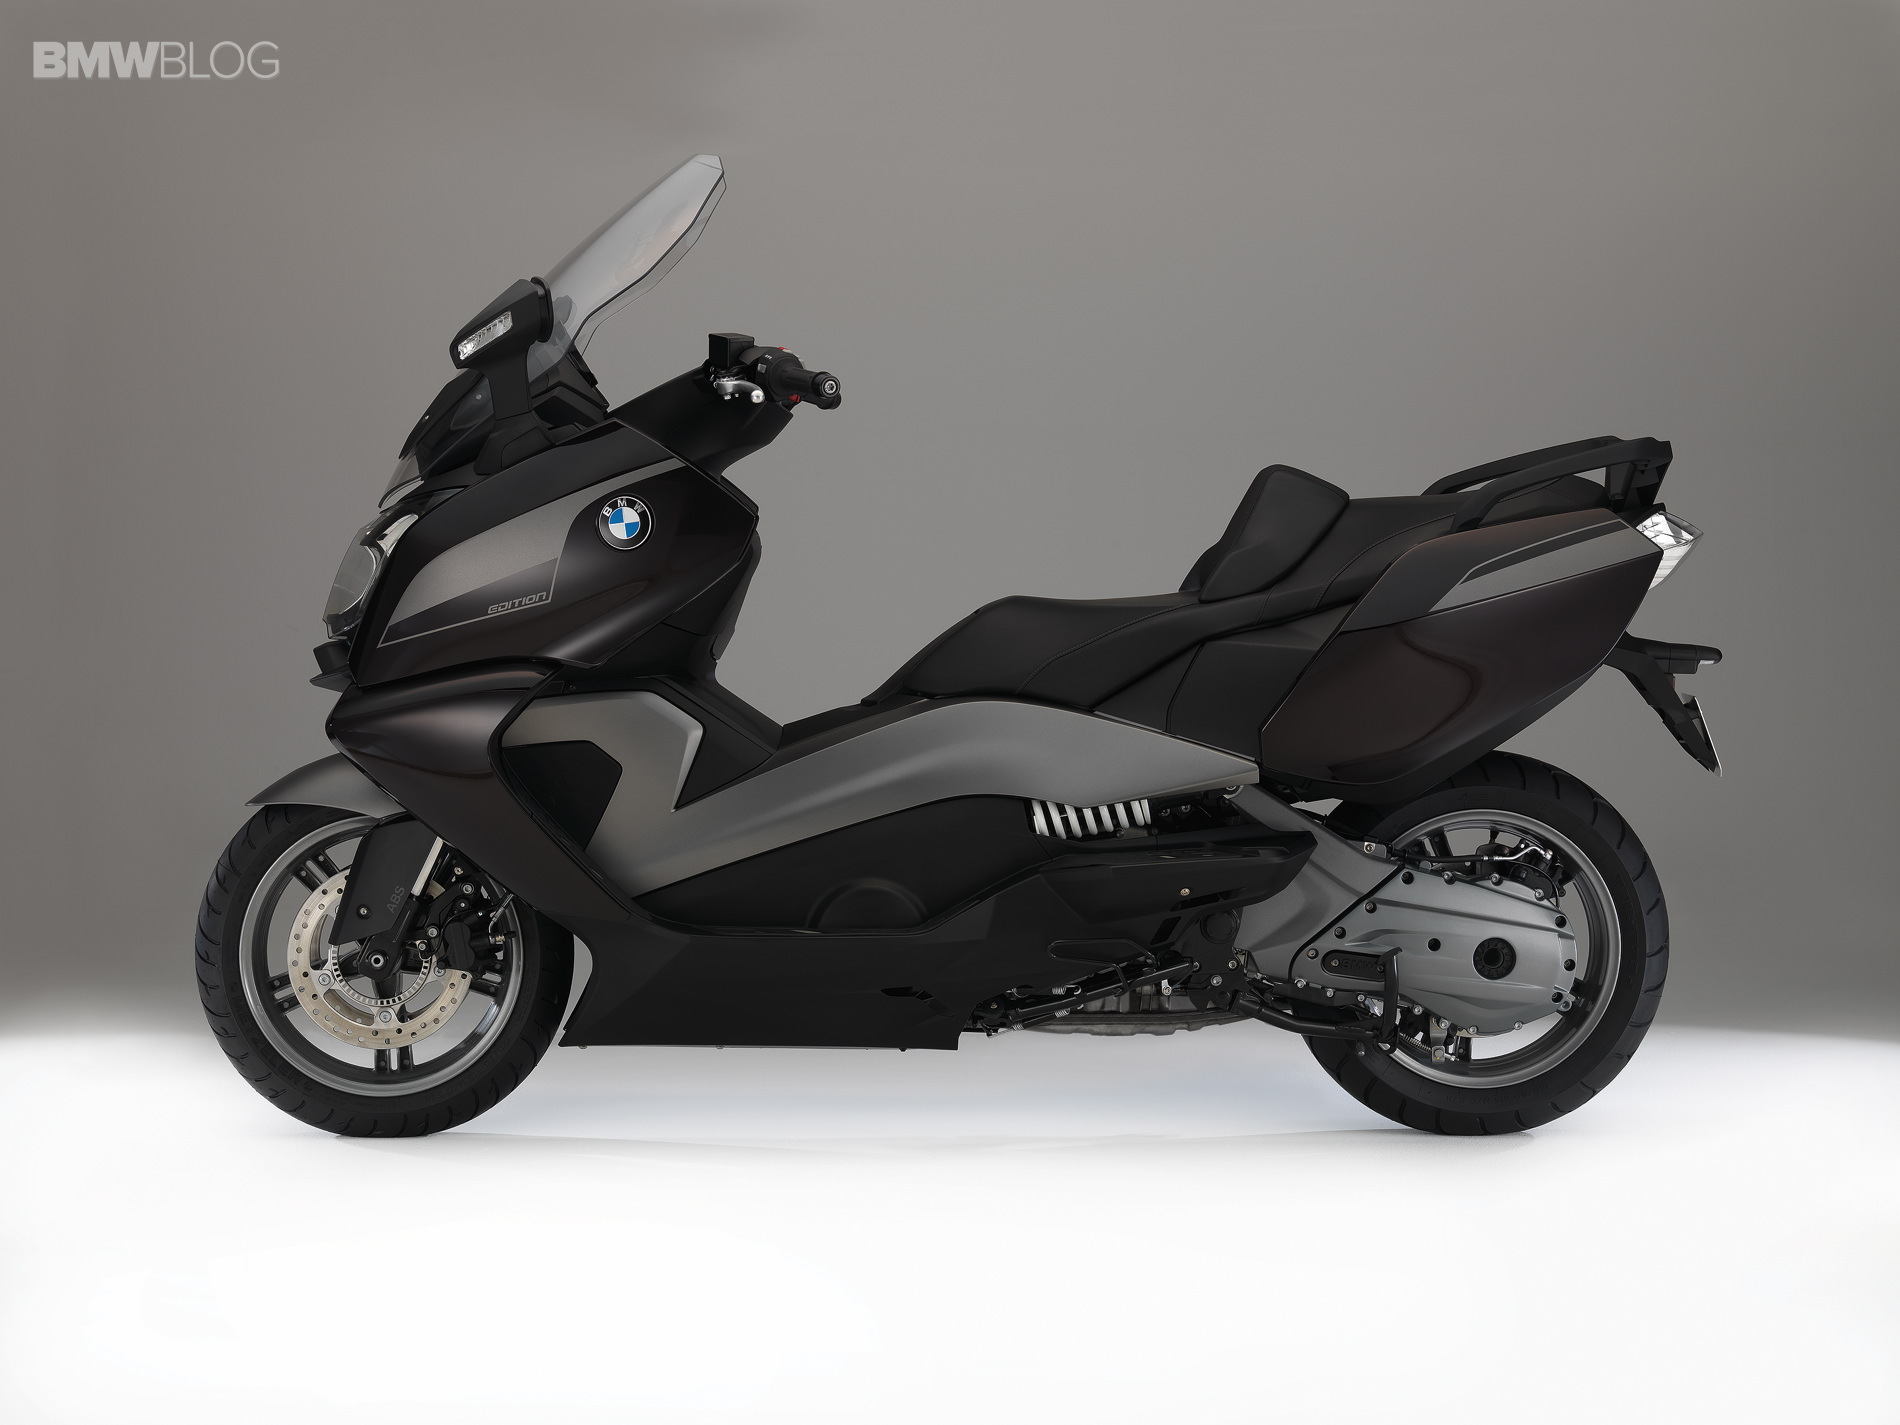 BMW C 600 Sport and C 650 GT 2